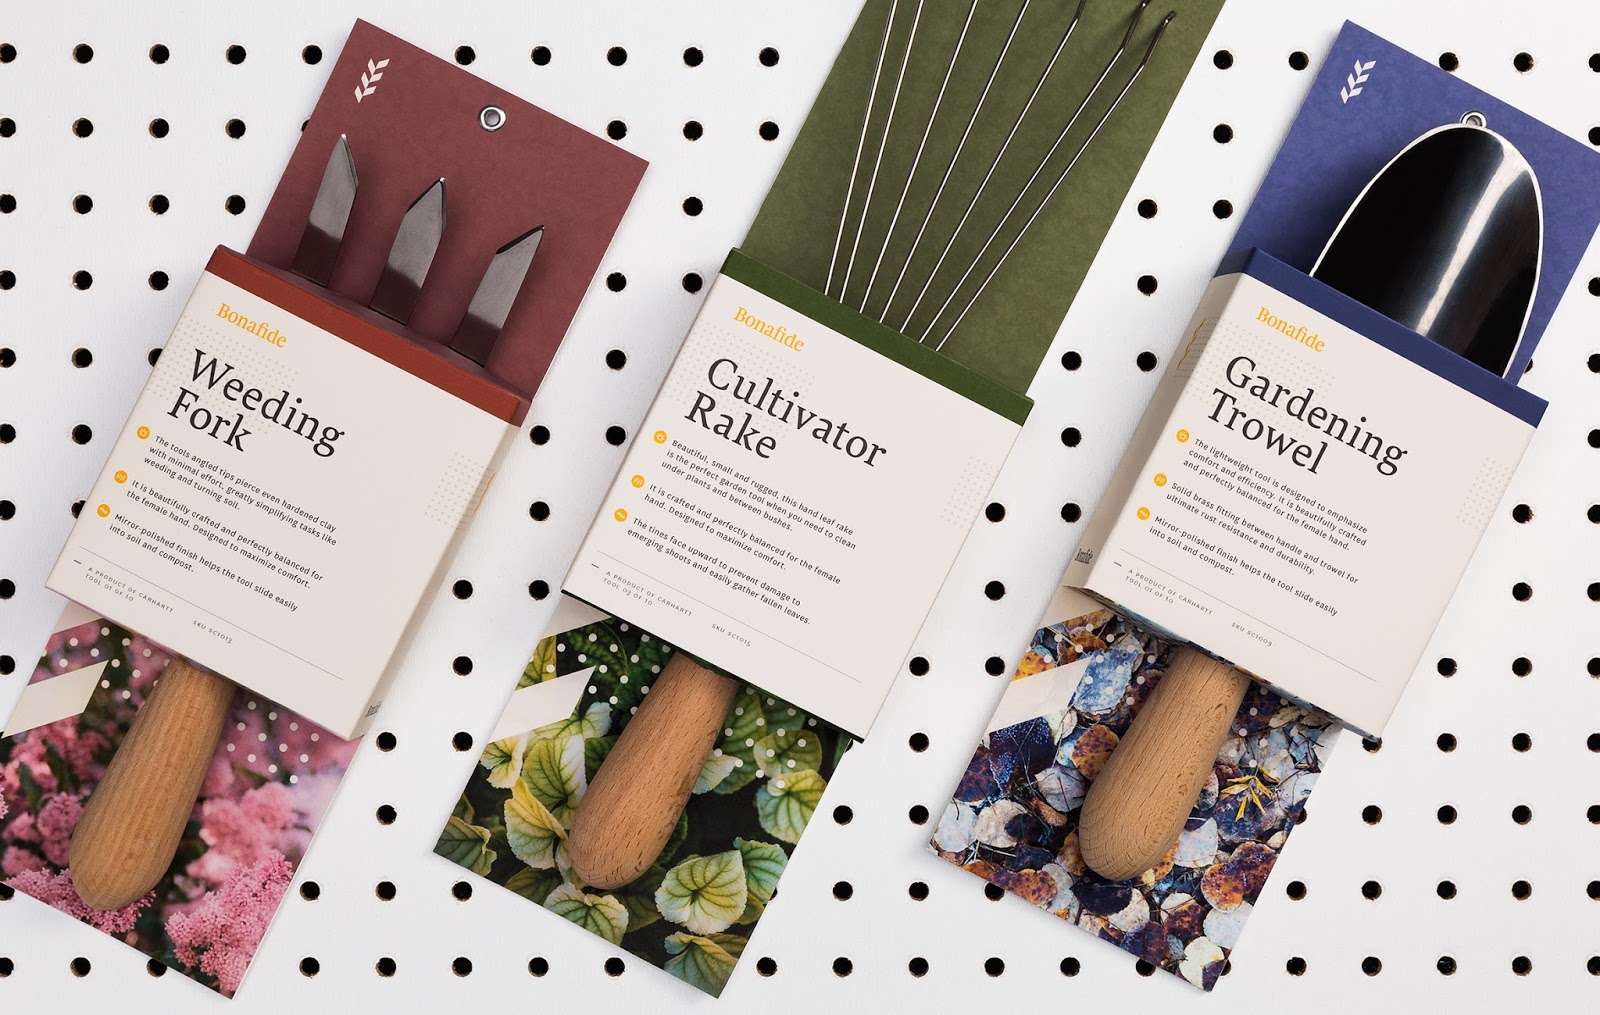 Bonafide Garden Tools Student Project on Packaging of